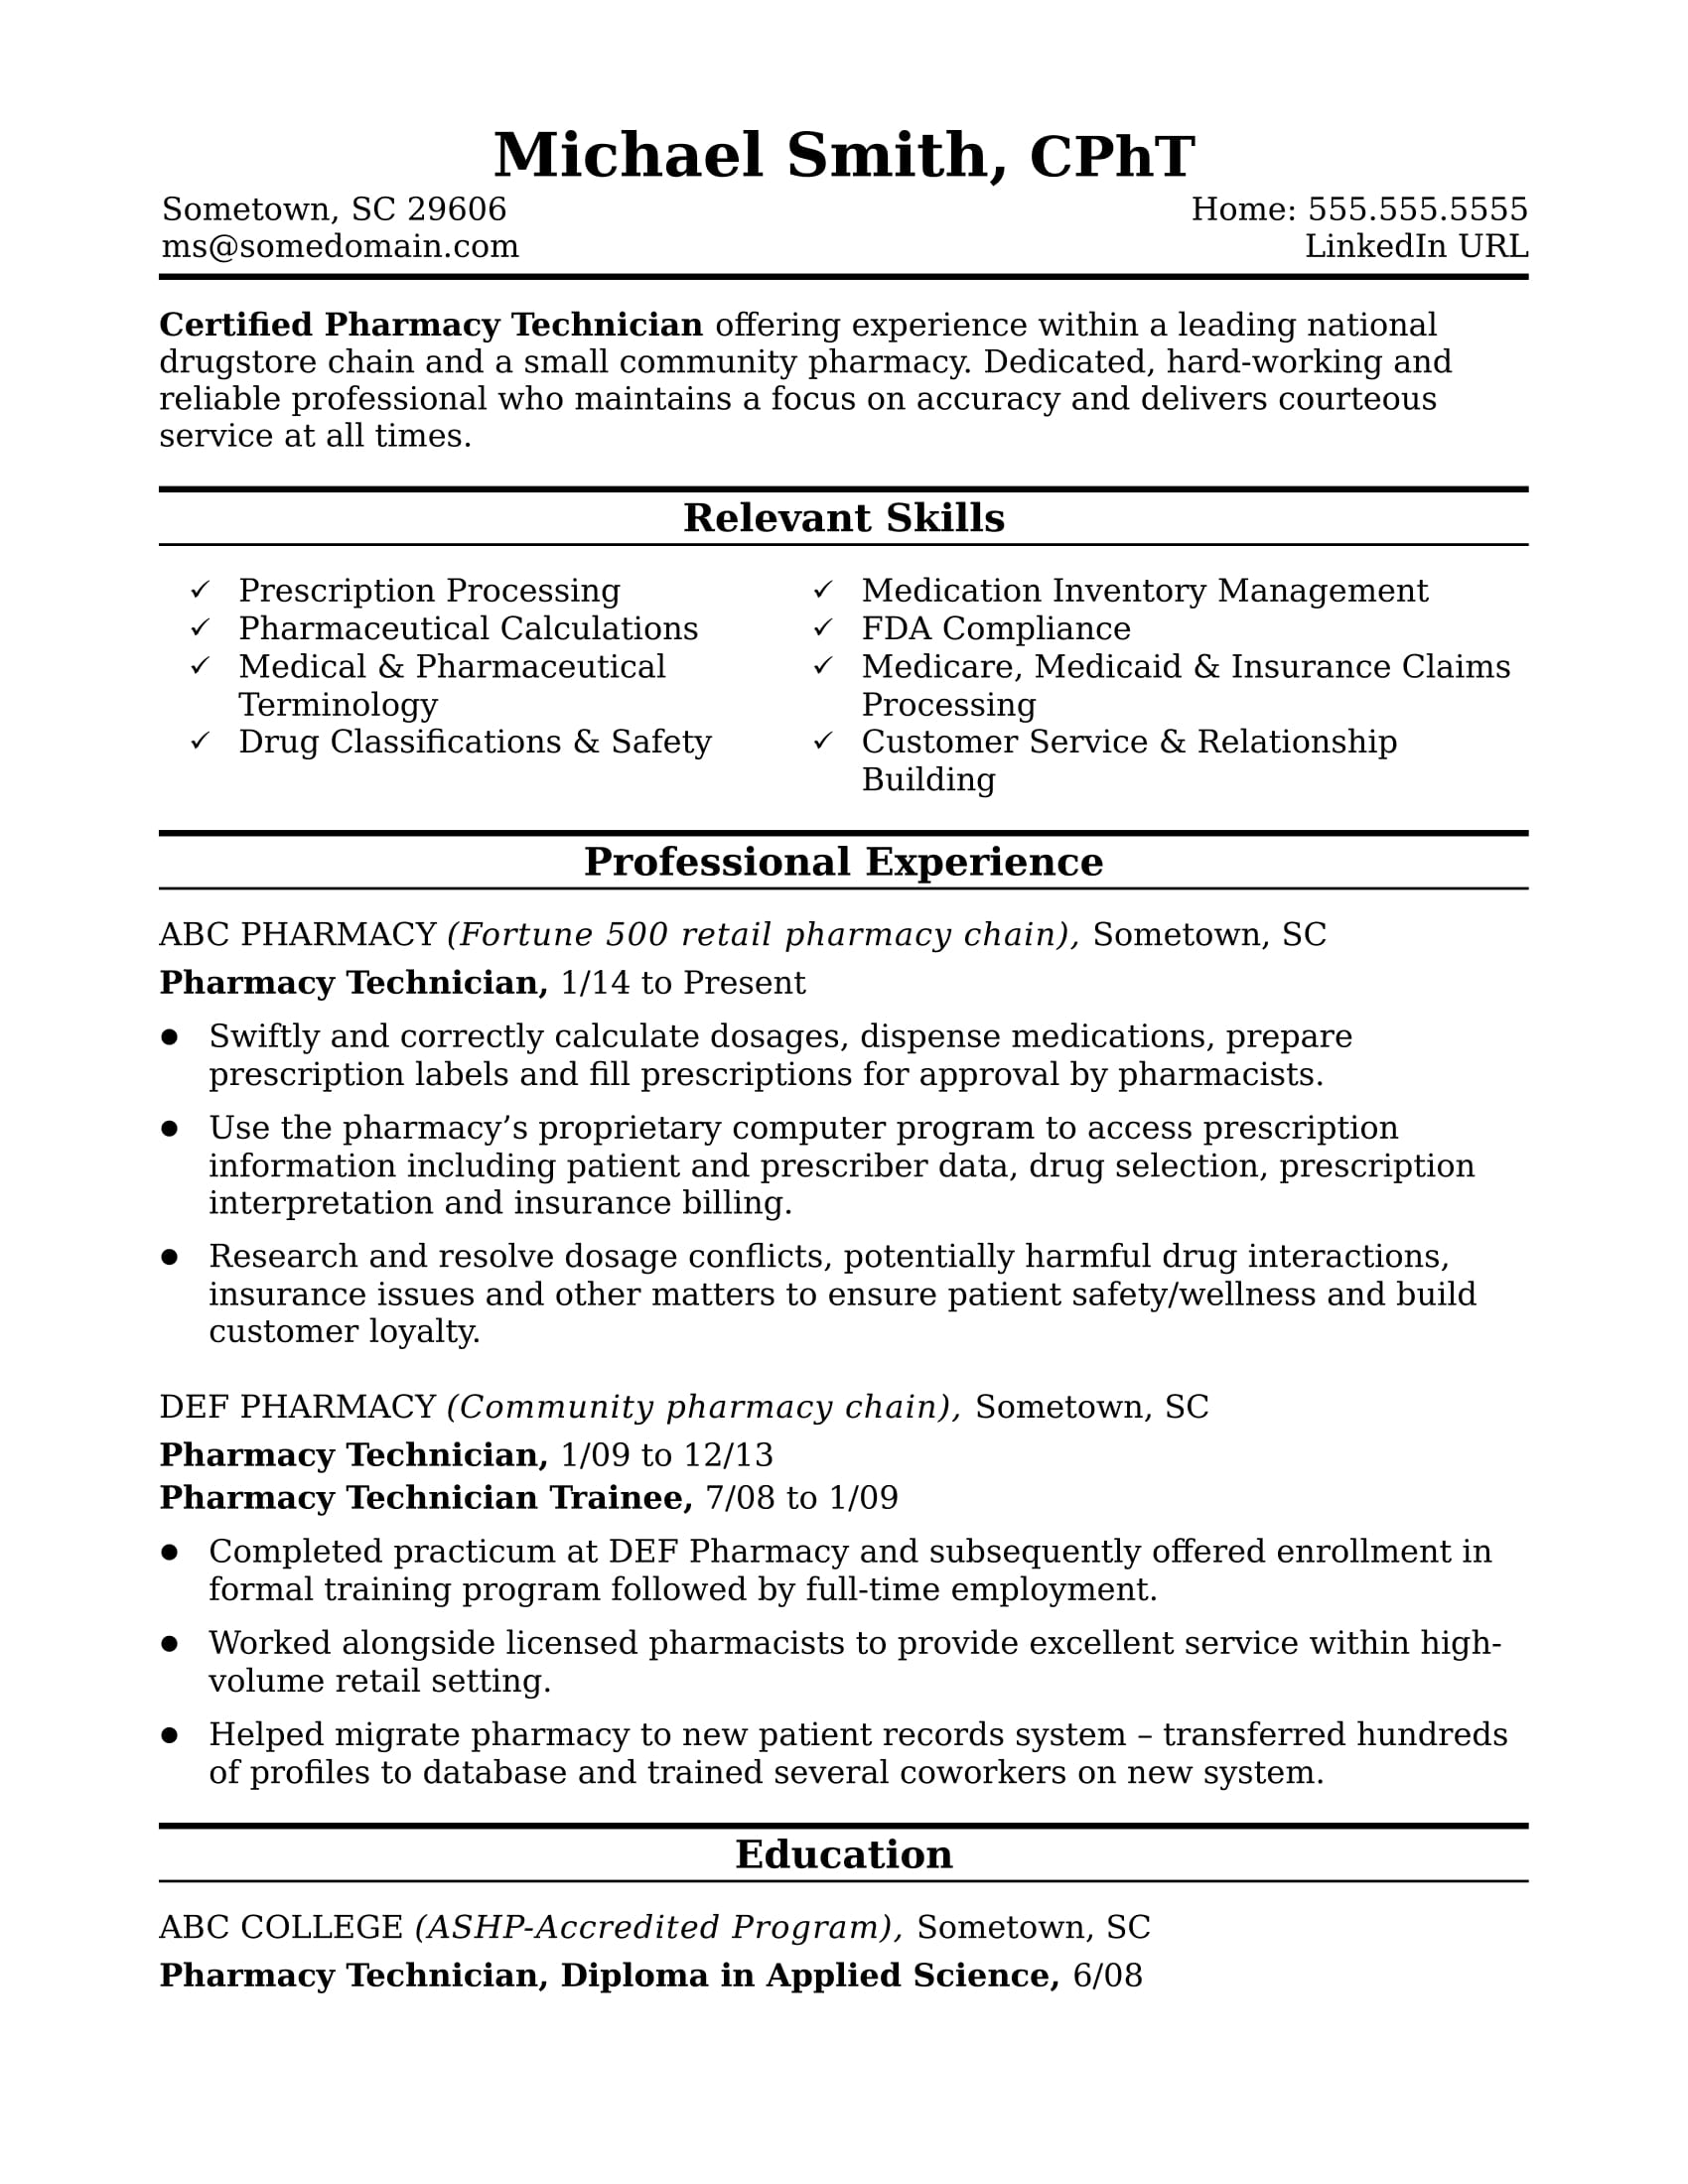 sample resume for a pharmacy technician - Pharmacy Technician Resume Sample